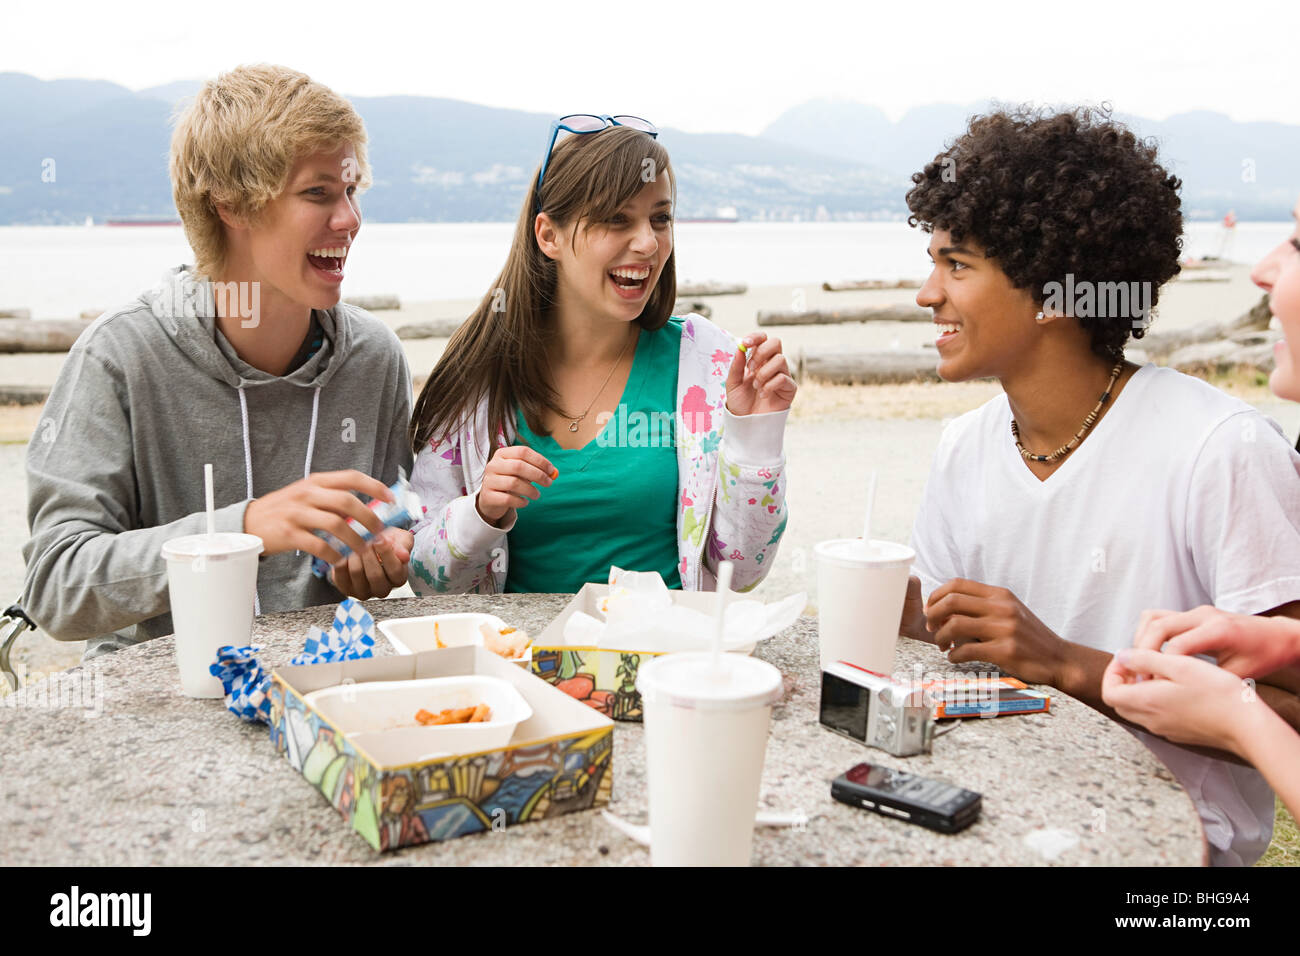 Teenagers with fast food - Stock Image